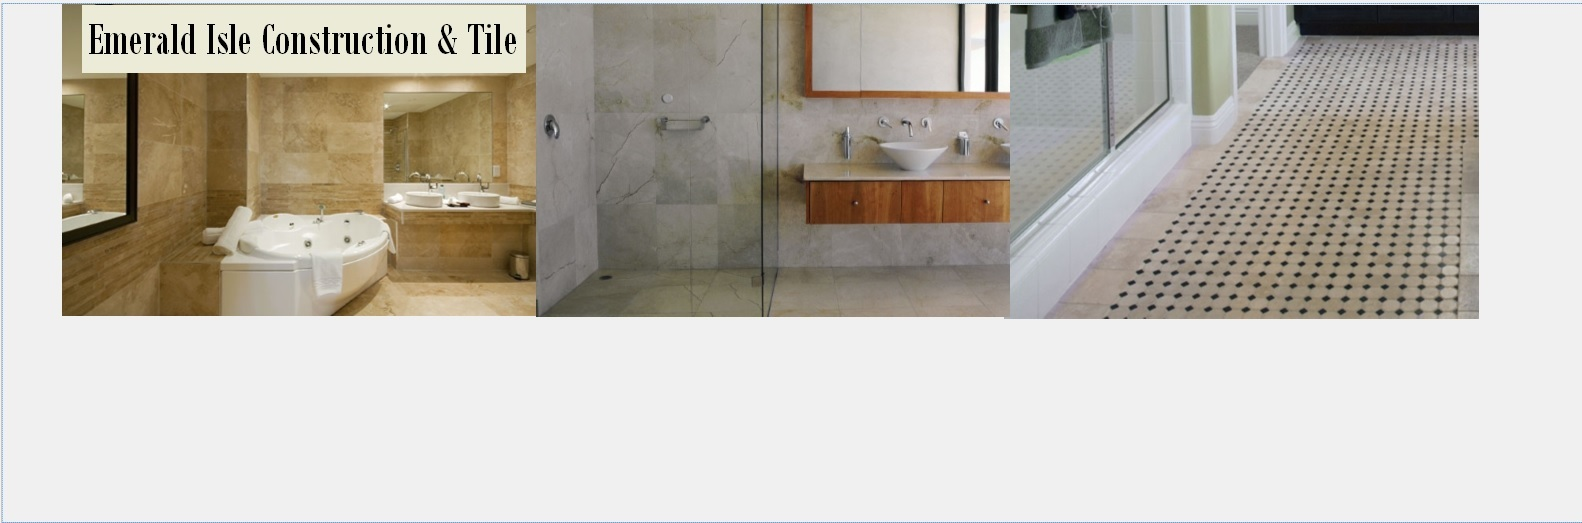 Emerald Isle Construction & Tile image 1